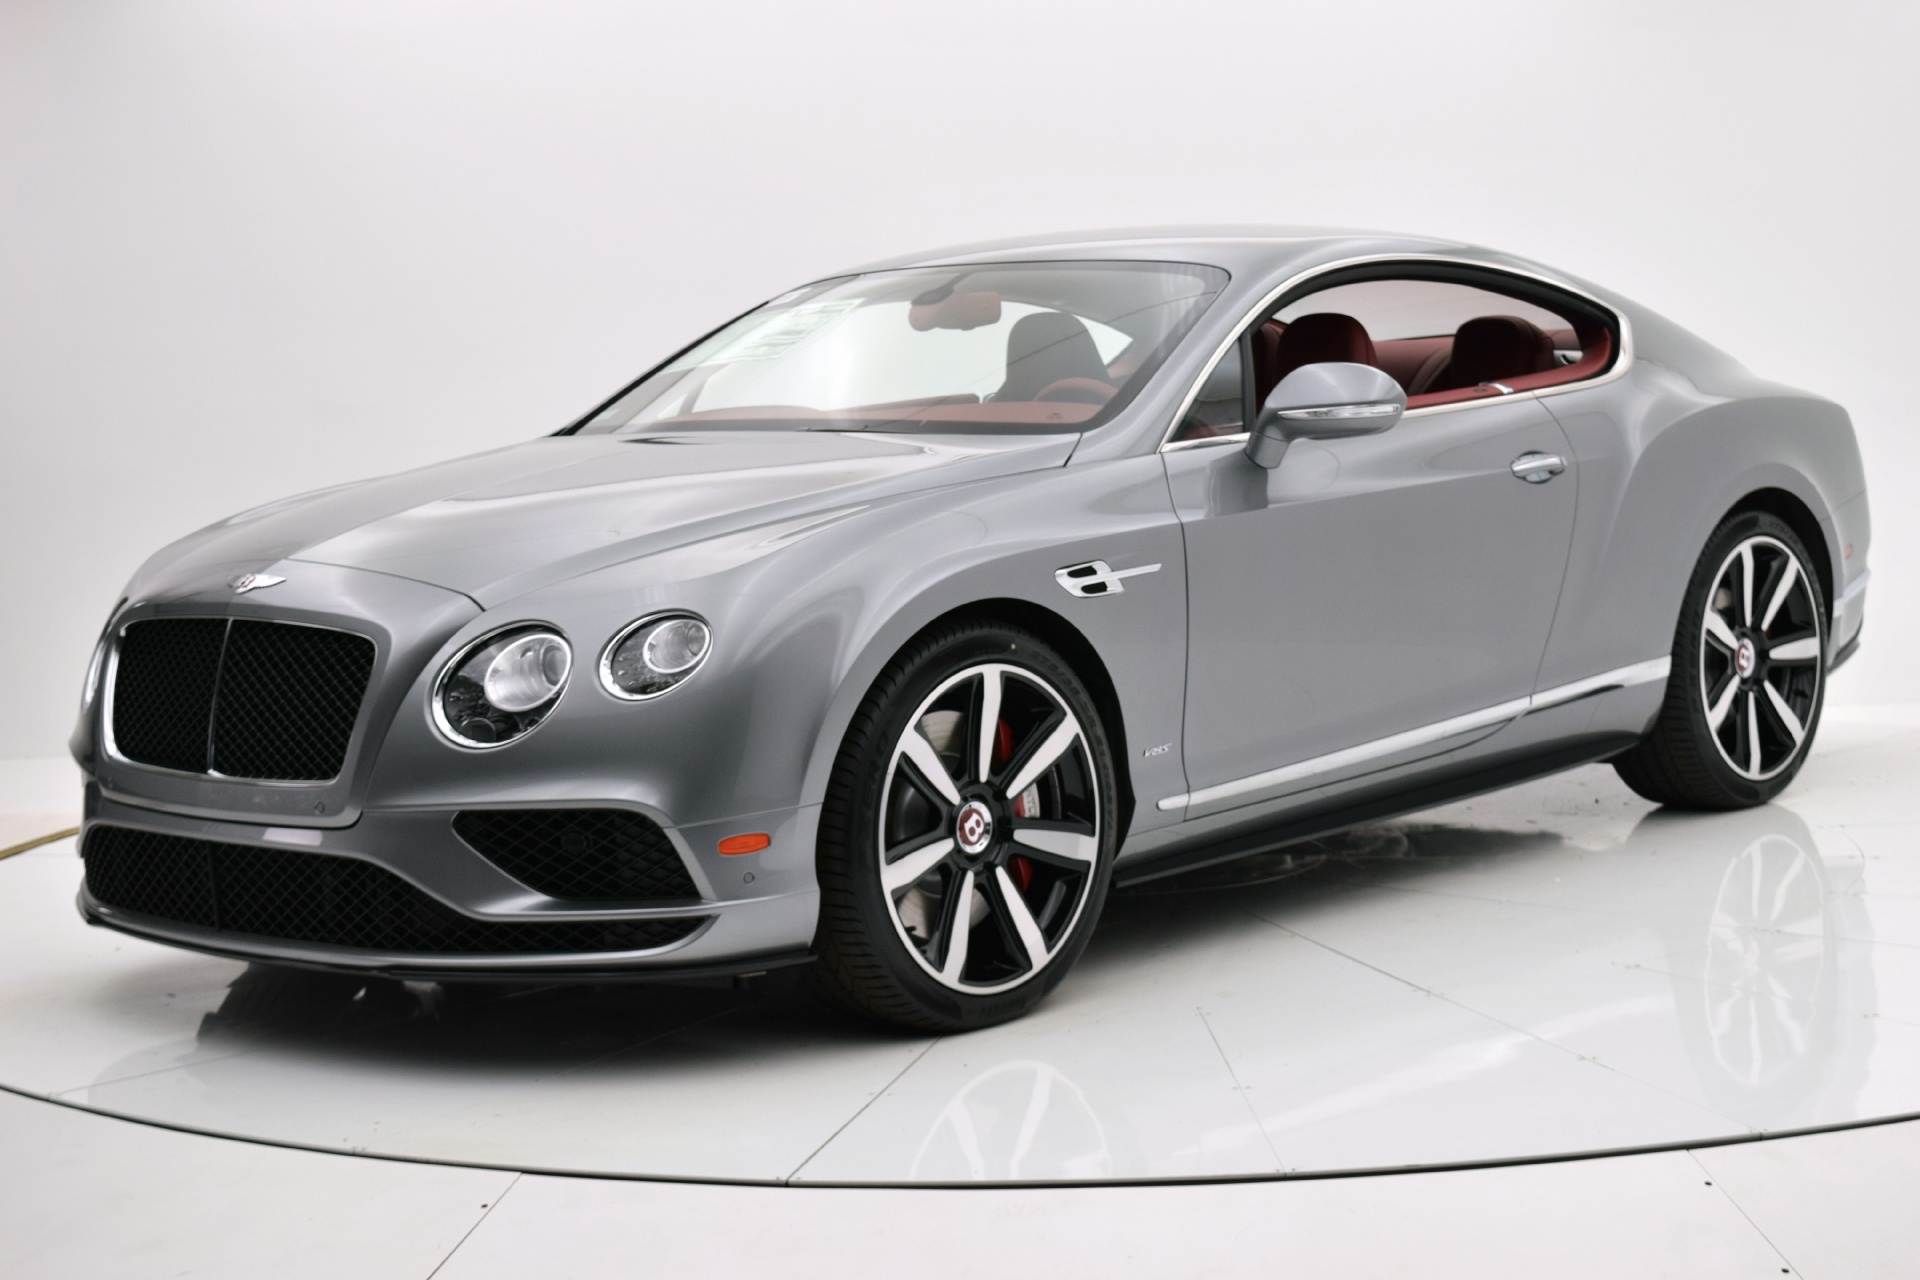 Used 2016 Bentley Continental GT V8 S for sale Sold at F.C. Kerbeck Aston Martin in Palmyra NJ 08065 2